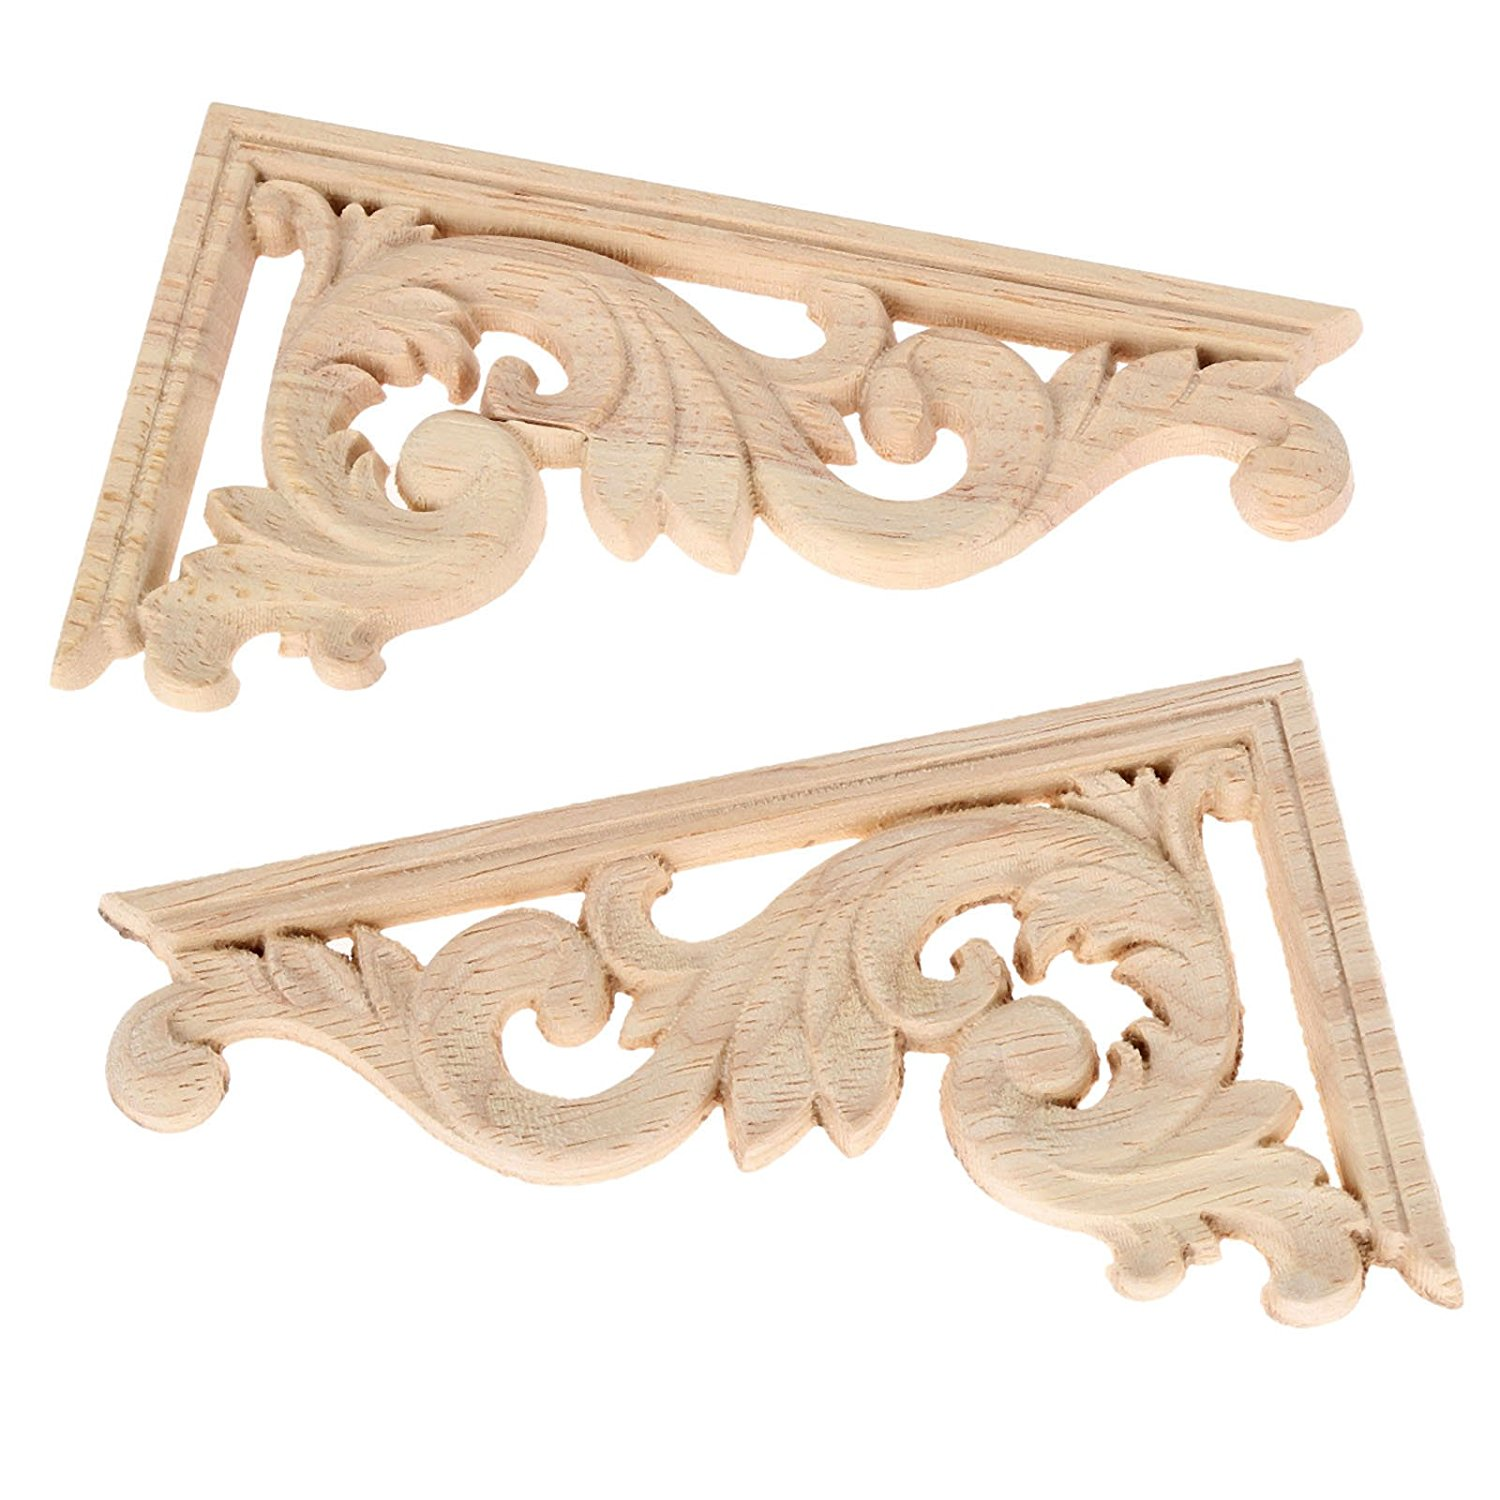 HOT SALE 2pcs Left+right(each 1pcs) Vintage Wooden Carved Corner Onlay Furniture Wall Decor Unpainted Frame Applique